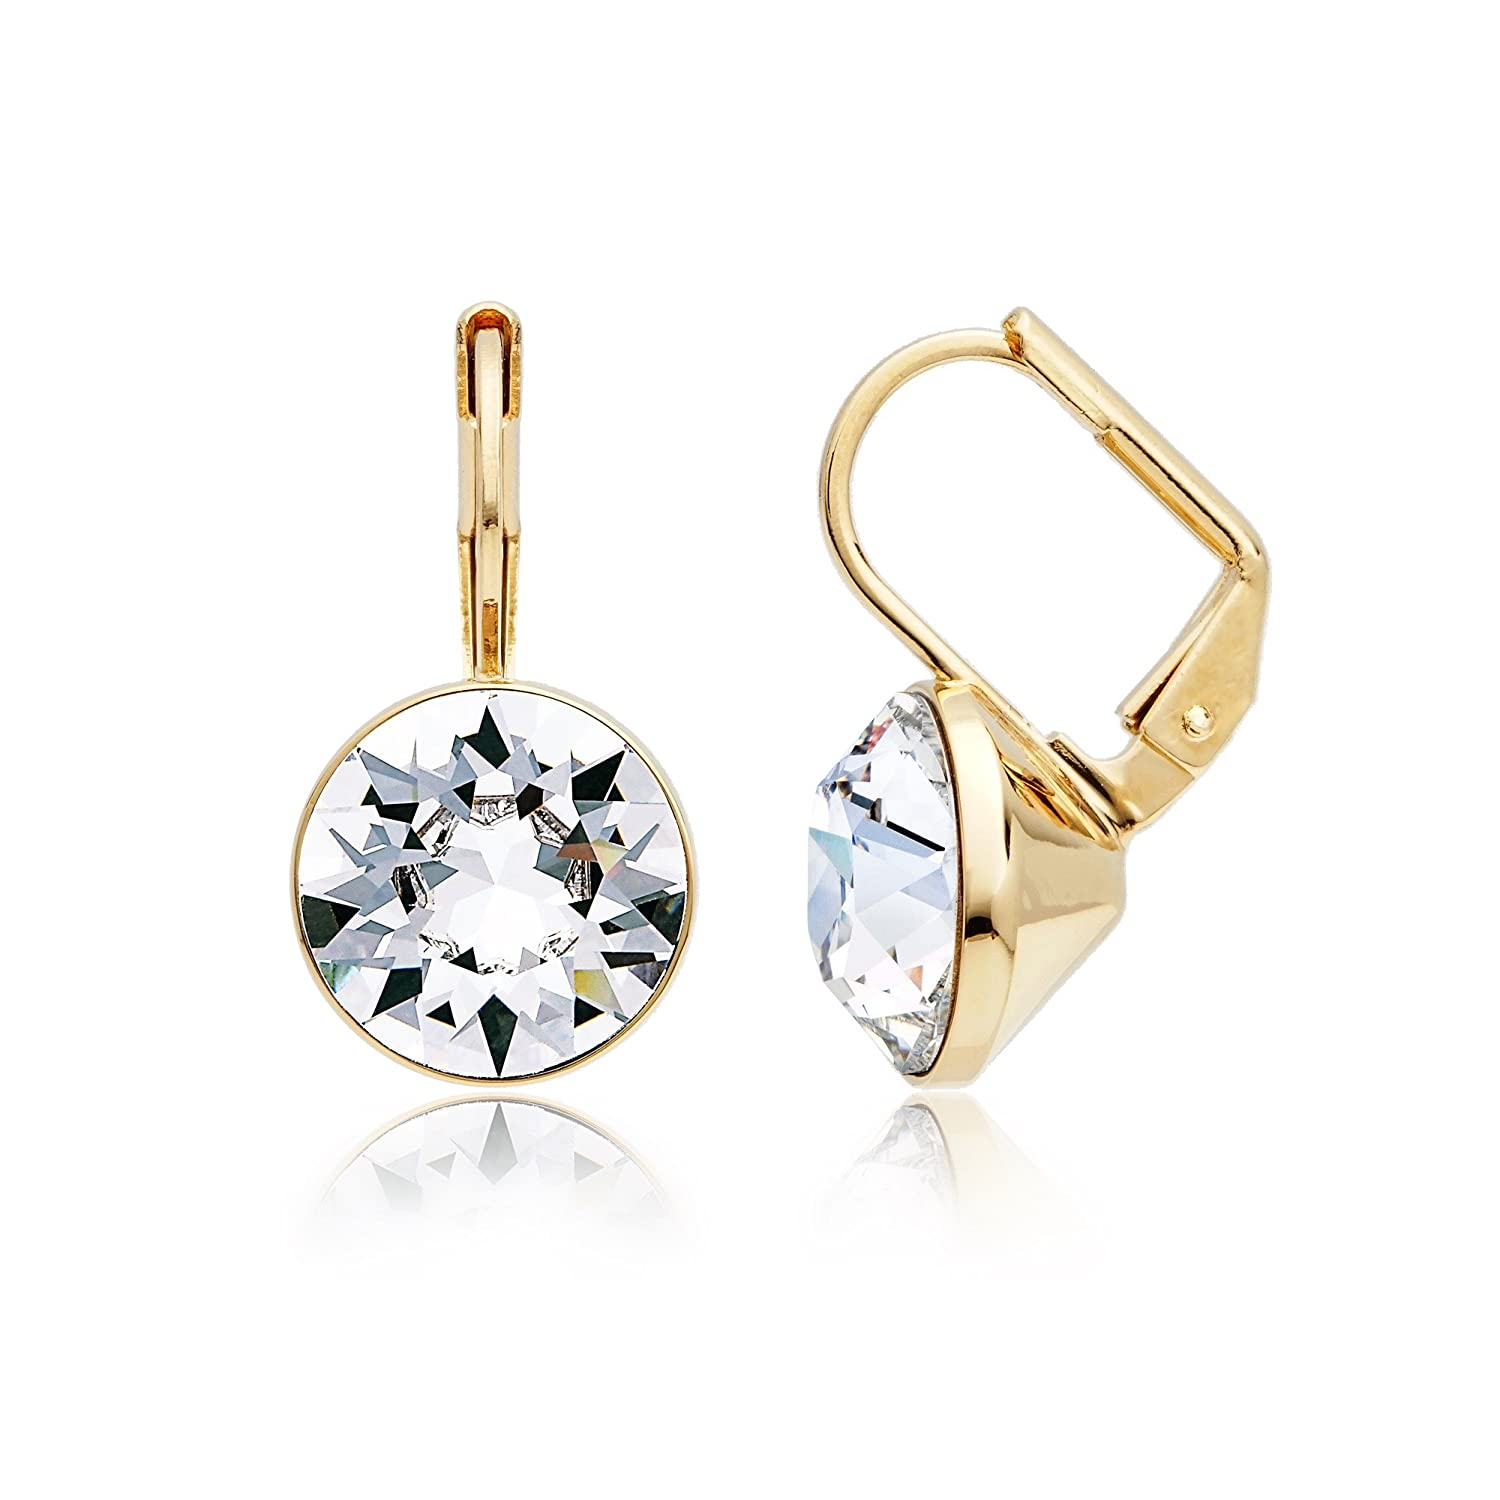 38f903e667 MYJS Bella 16k Gold Plated Mini Drop Earrings with Clear Swarovski Crystals